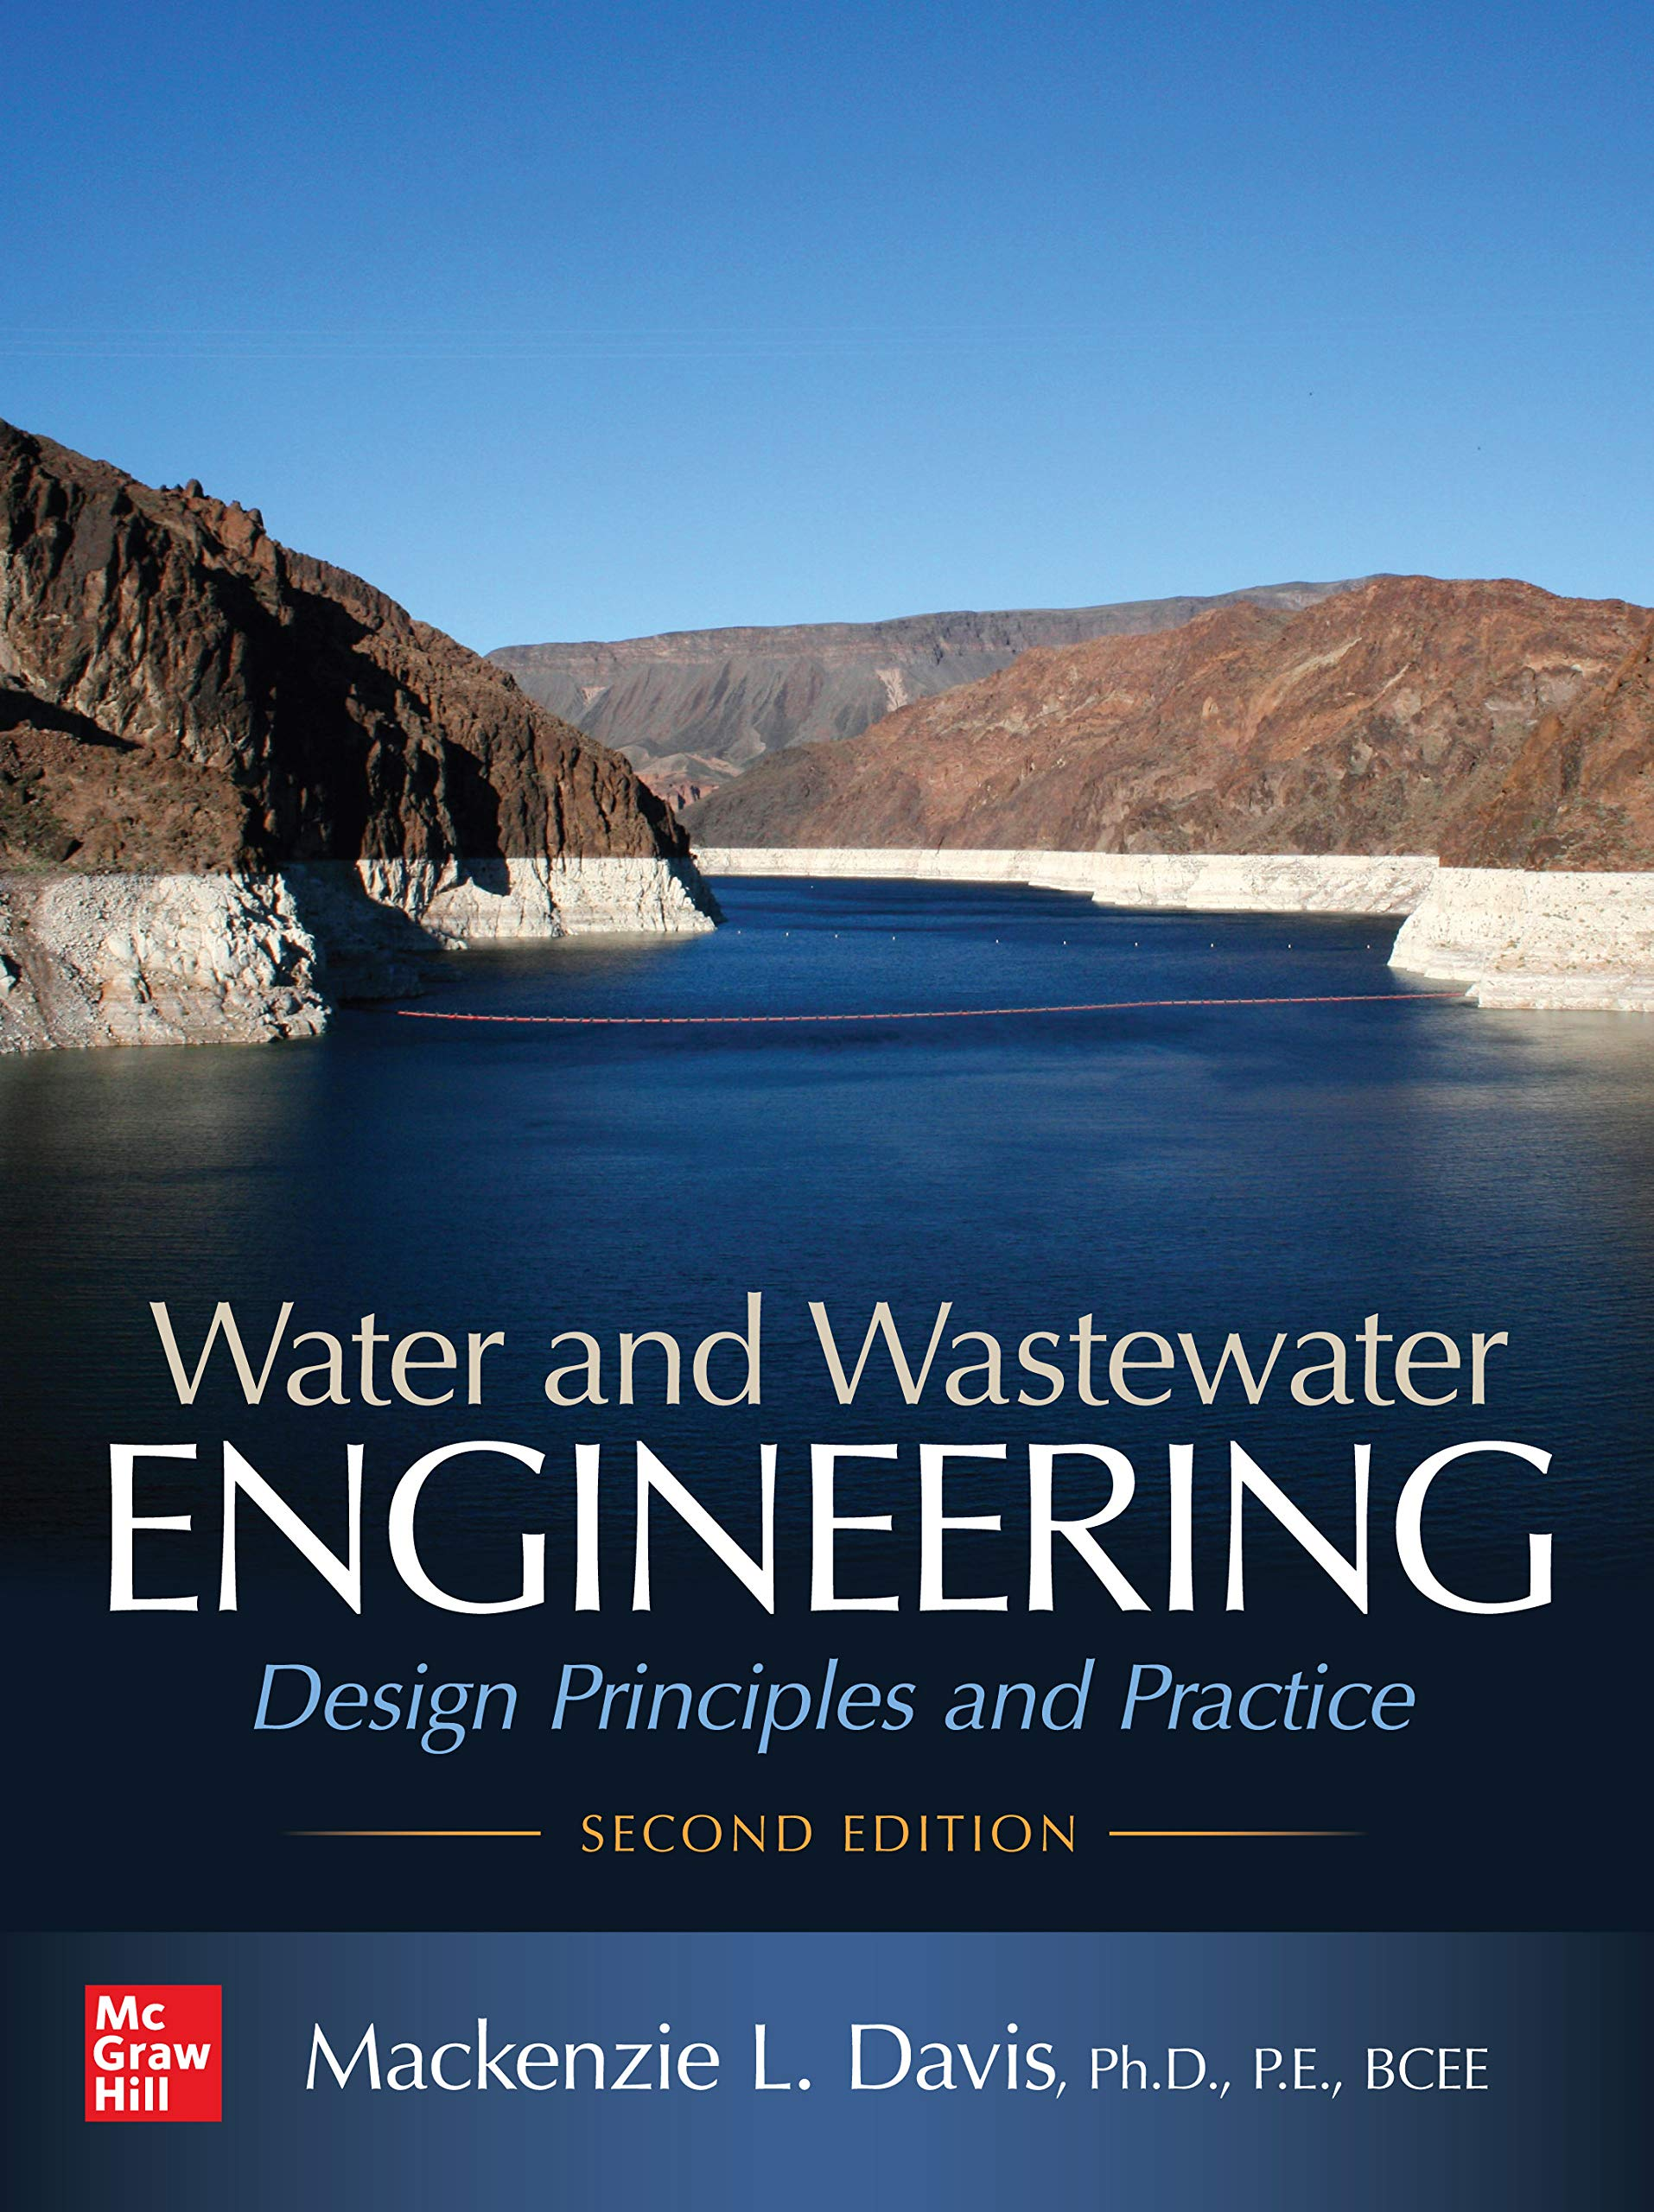 Image OfWater And Wastewater Engineering: Design Principles And Practice, Second Edition (English Edition)